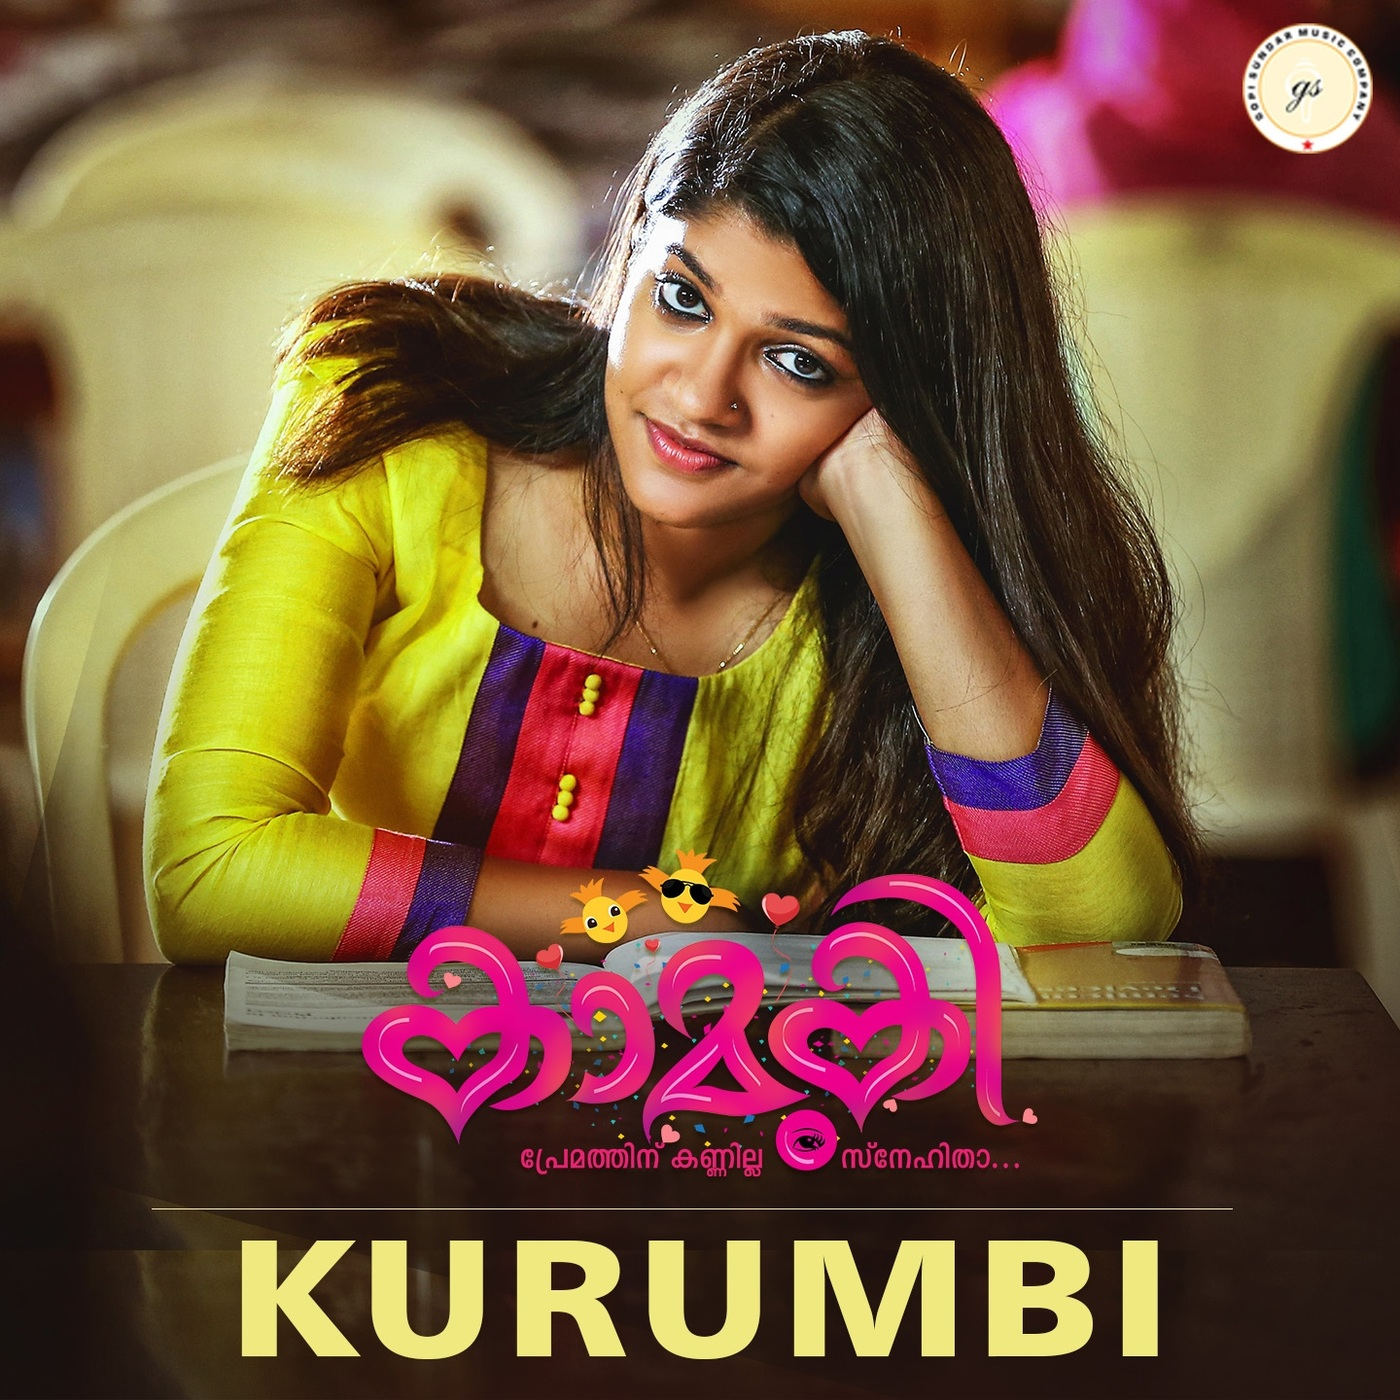 Kurumbi From Kaamuki 16 BIT FLAC Songs